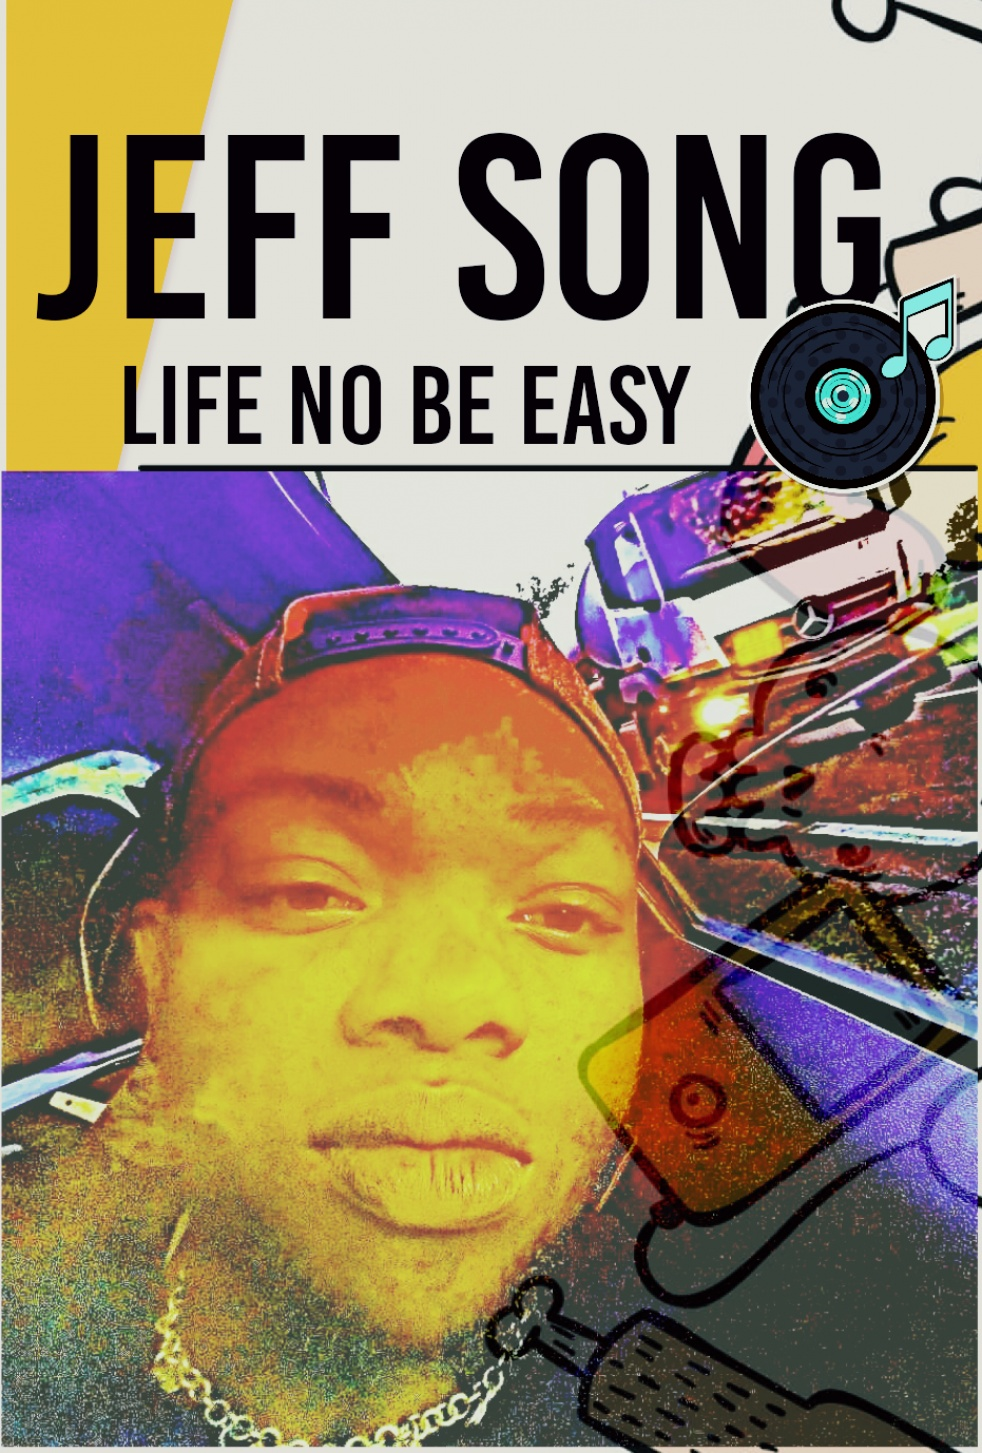 JEFF SONG - show cover